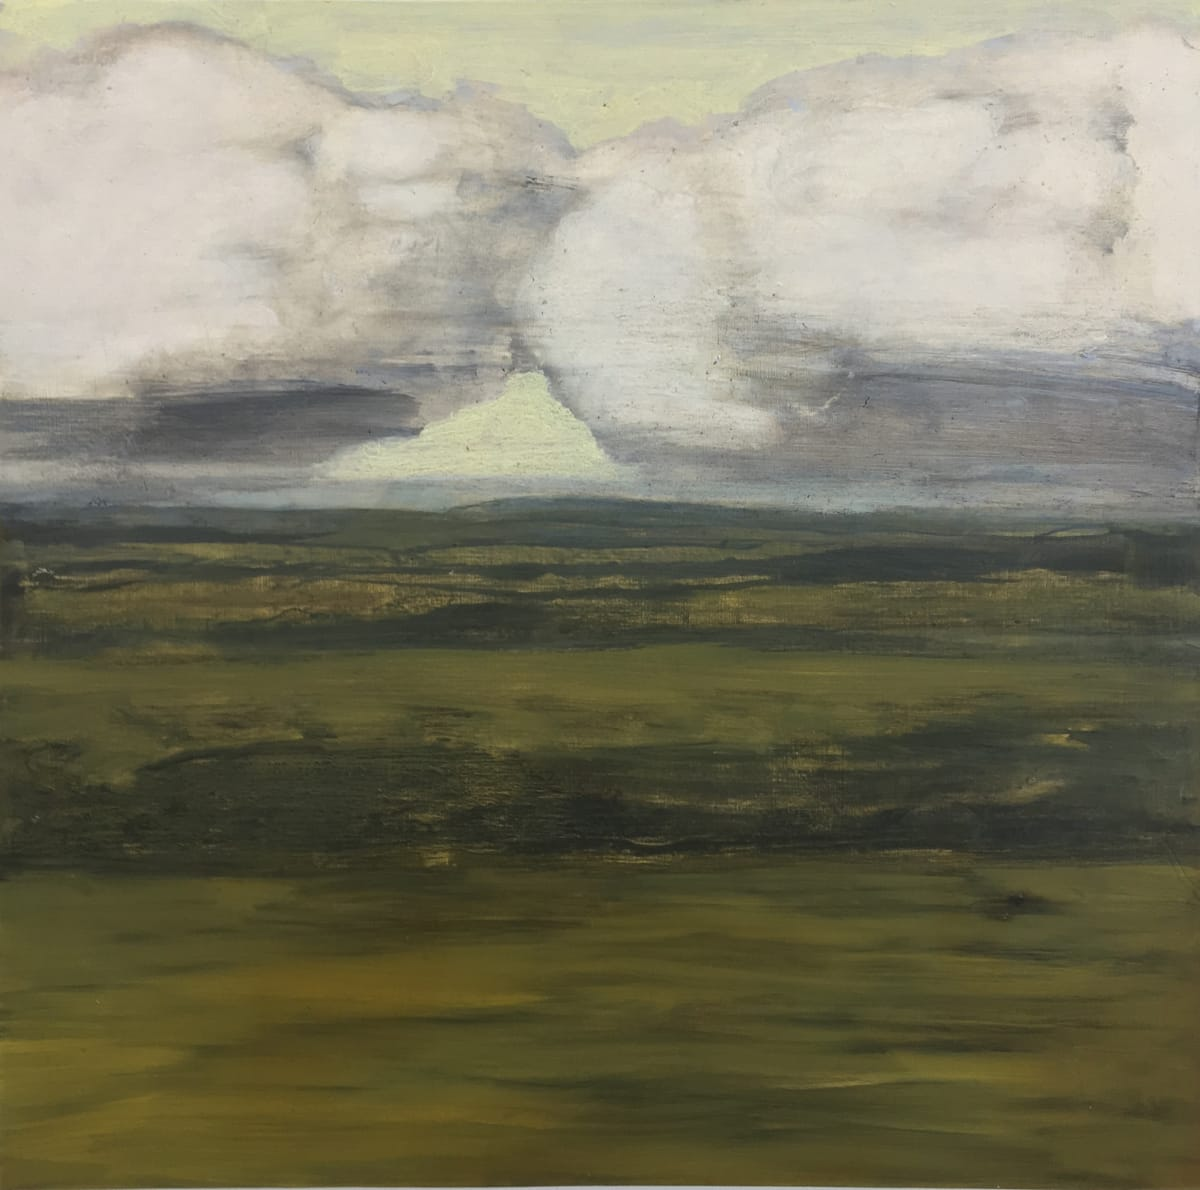 David Konigsberg, Long View, 2019